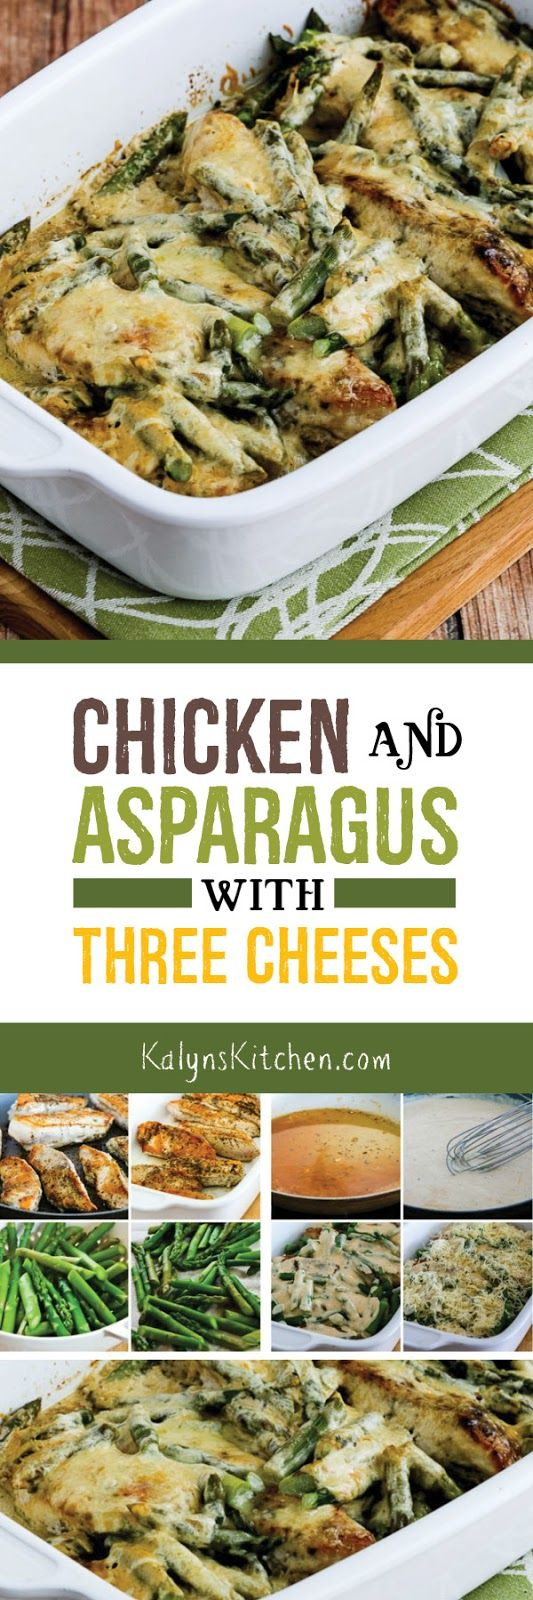 EASY CHICKEN AND ASPARAGUS WITH THREE CHEESES